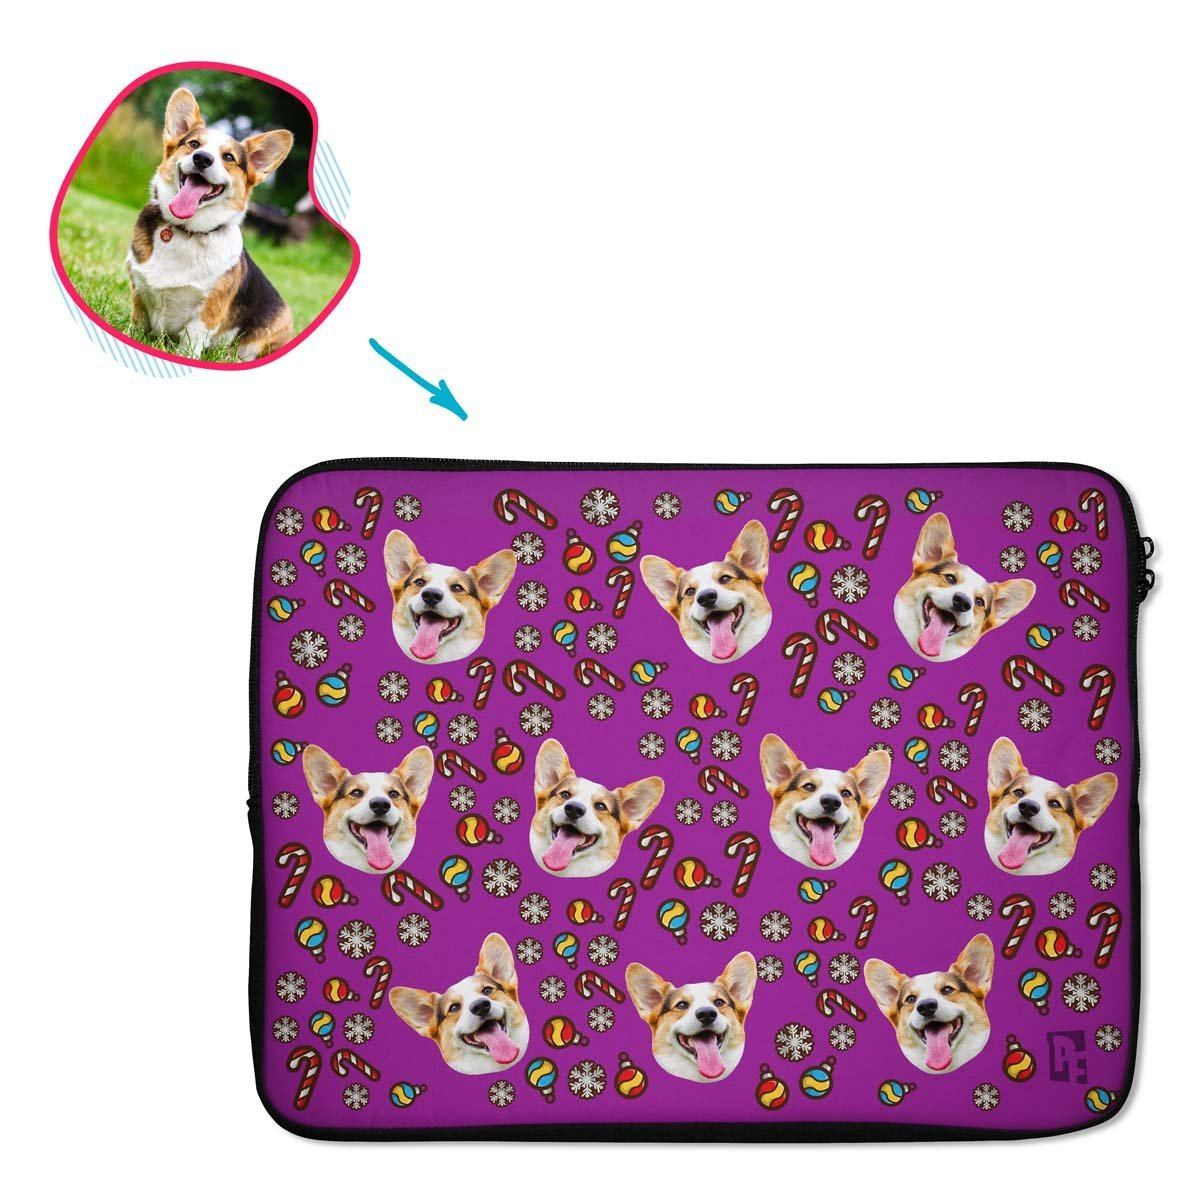 purple Christmas Tree Toy laptop sleeve personalized with photo of face printed on them